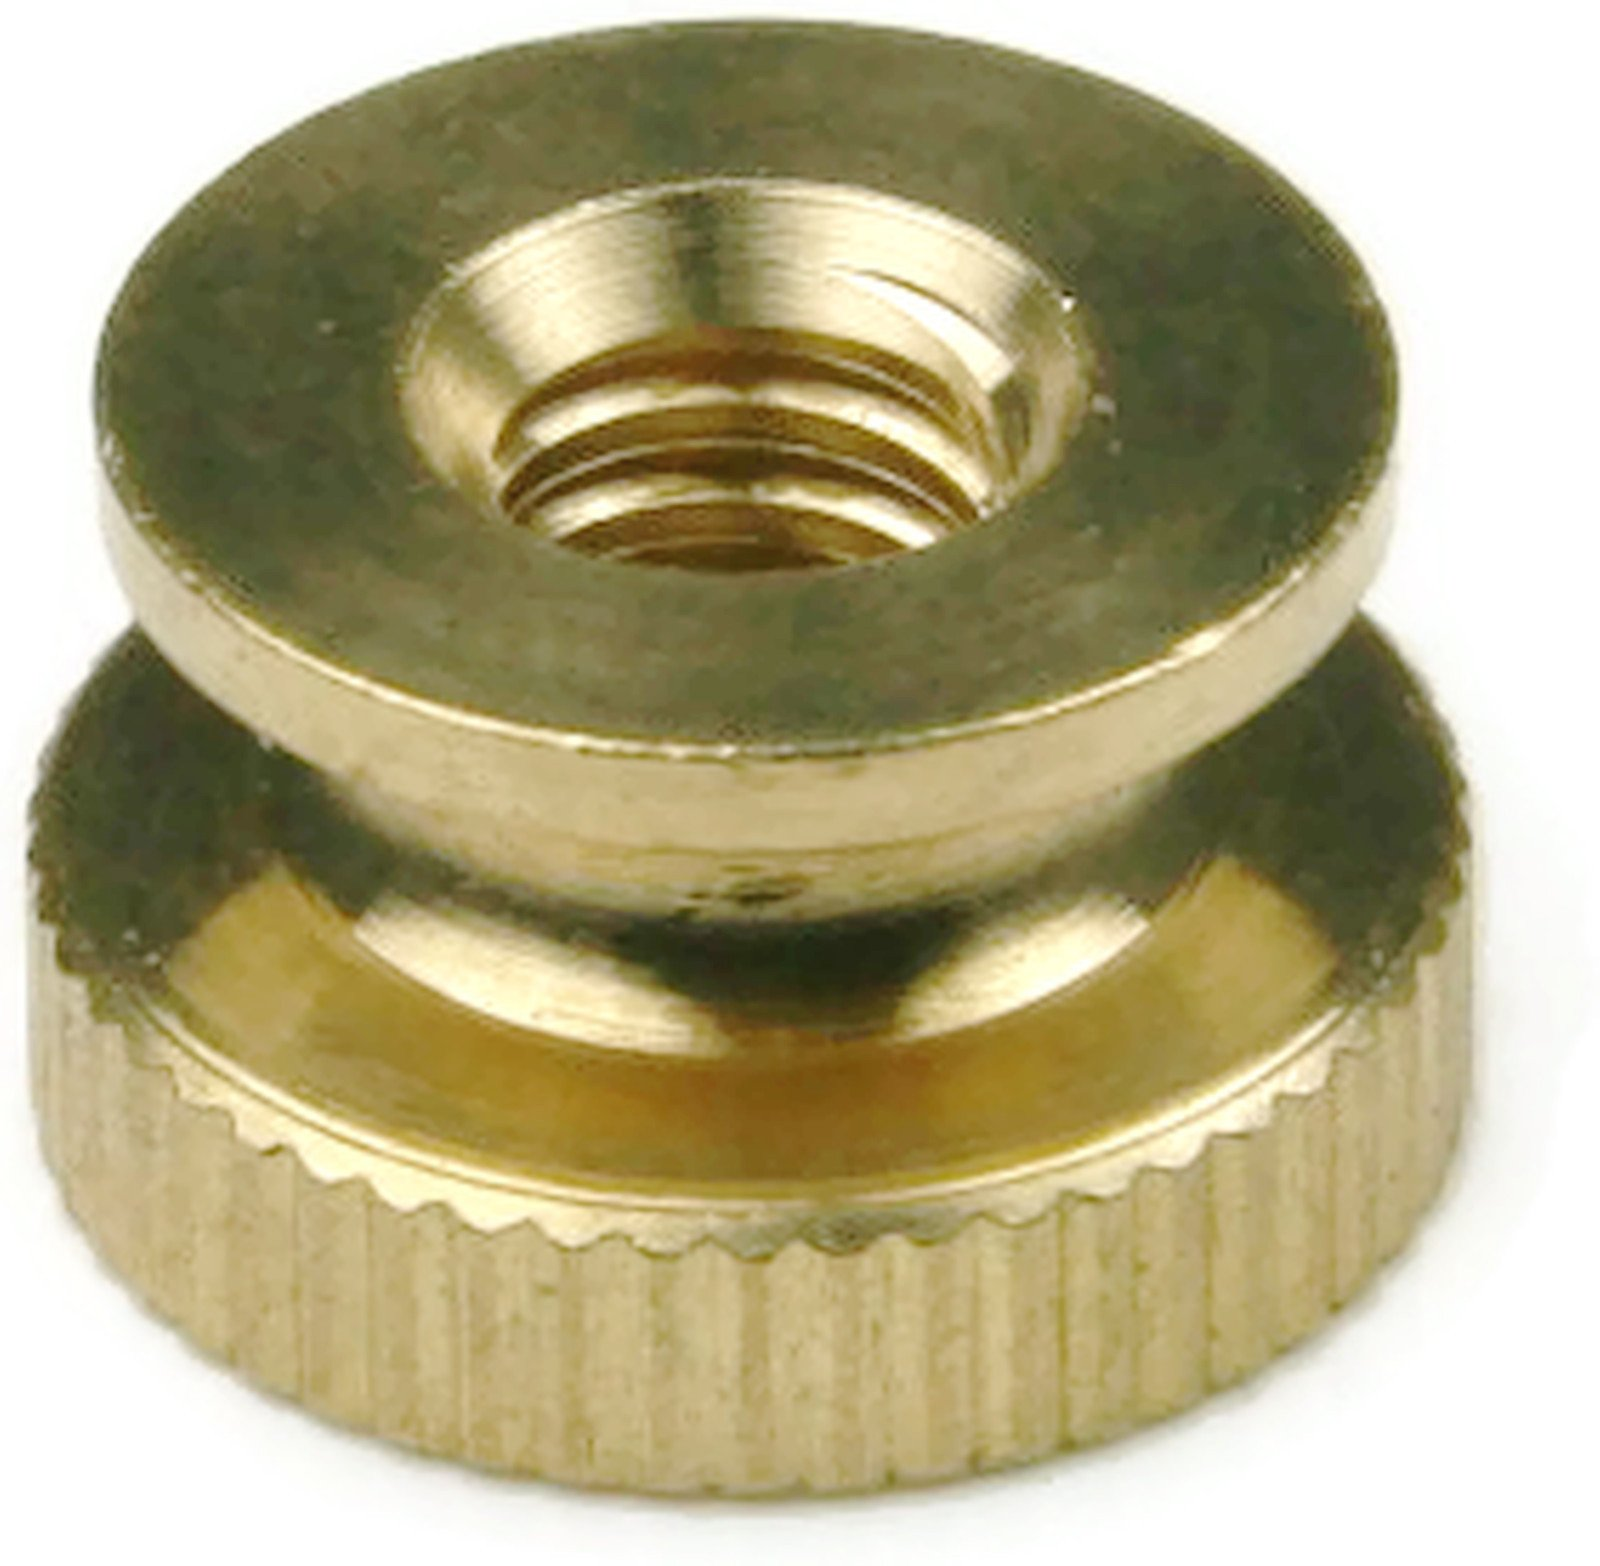 Brass Knurled Thumb Nut Solid Brass 5/16-18 - Solid Brass - (Quantity: 100 pcs) - (11/16 Dia x 13/32 Thick) by Newport Fasteners